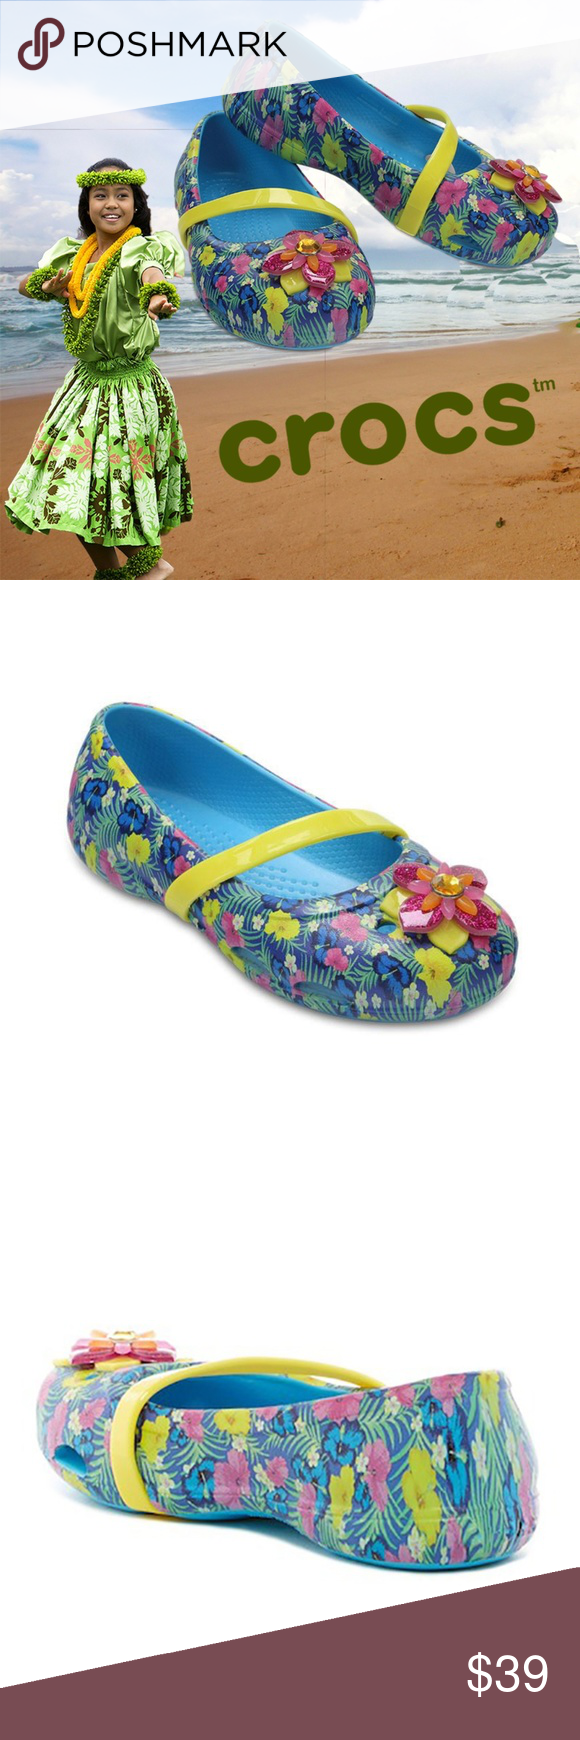 6b4322389daf Crocs Girls Lina Graphic Flat Shoes Slip-on ✓Shower her feet with gems in